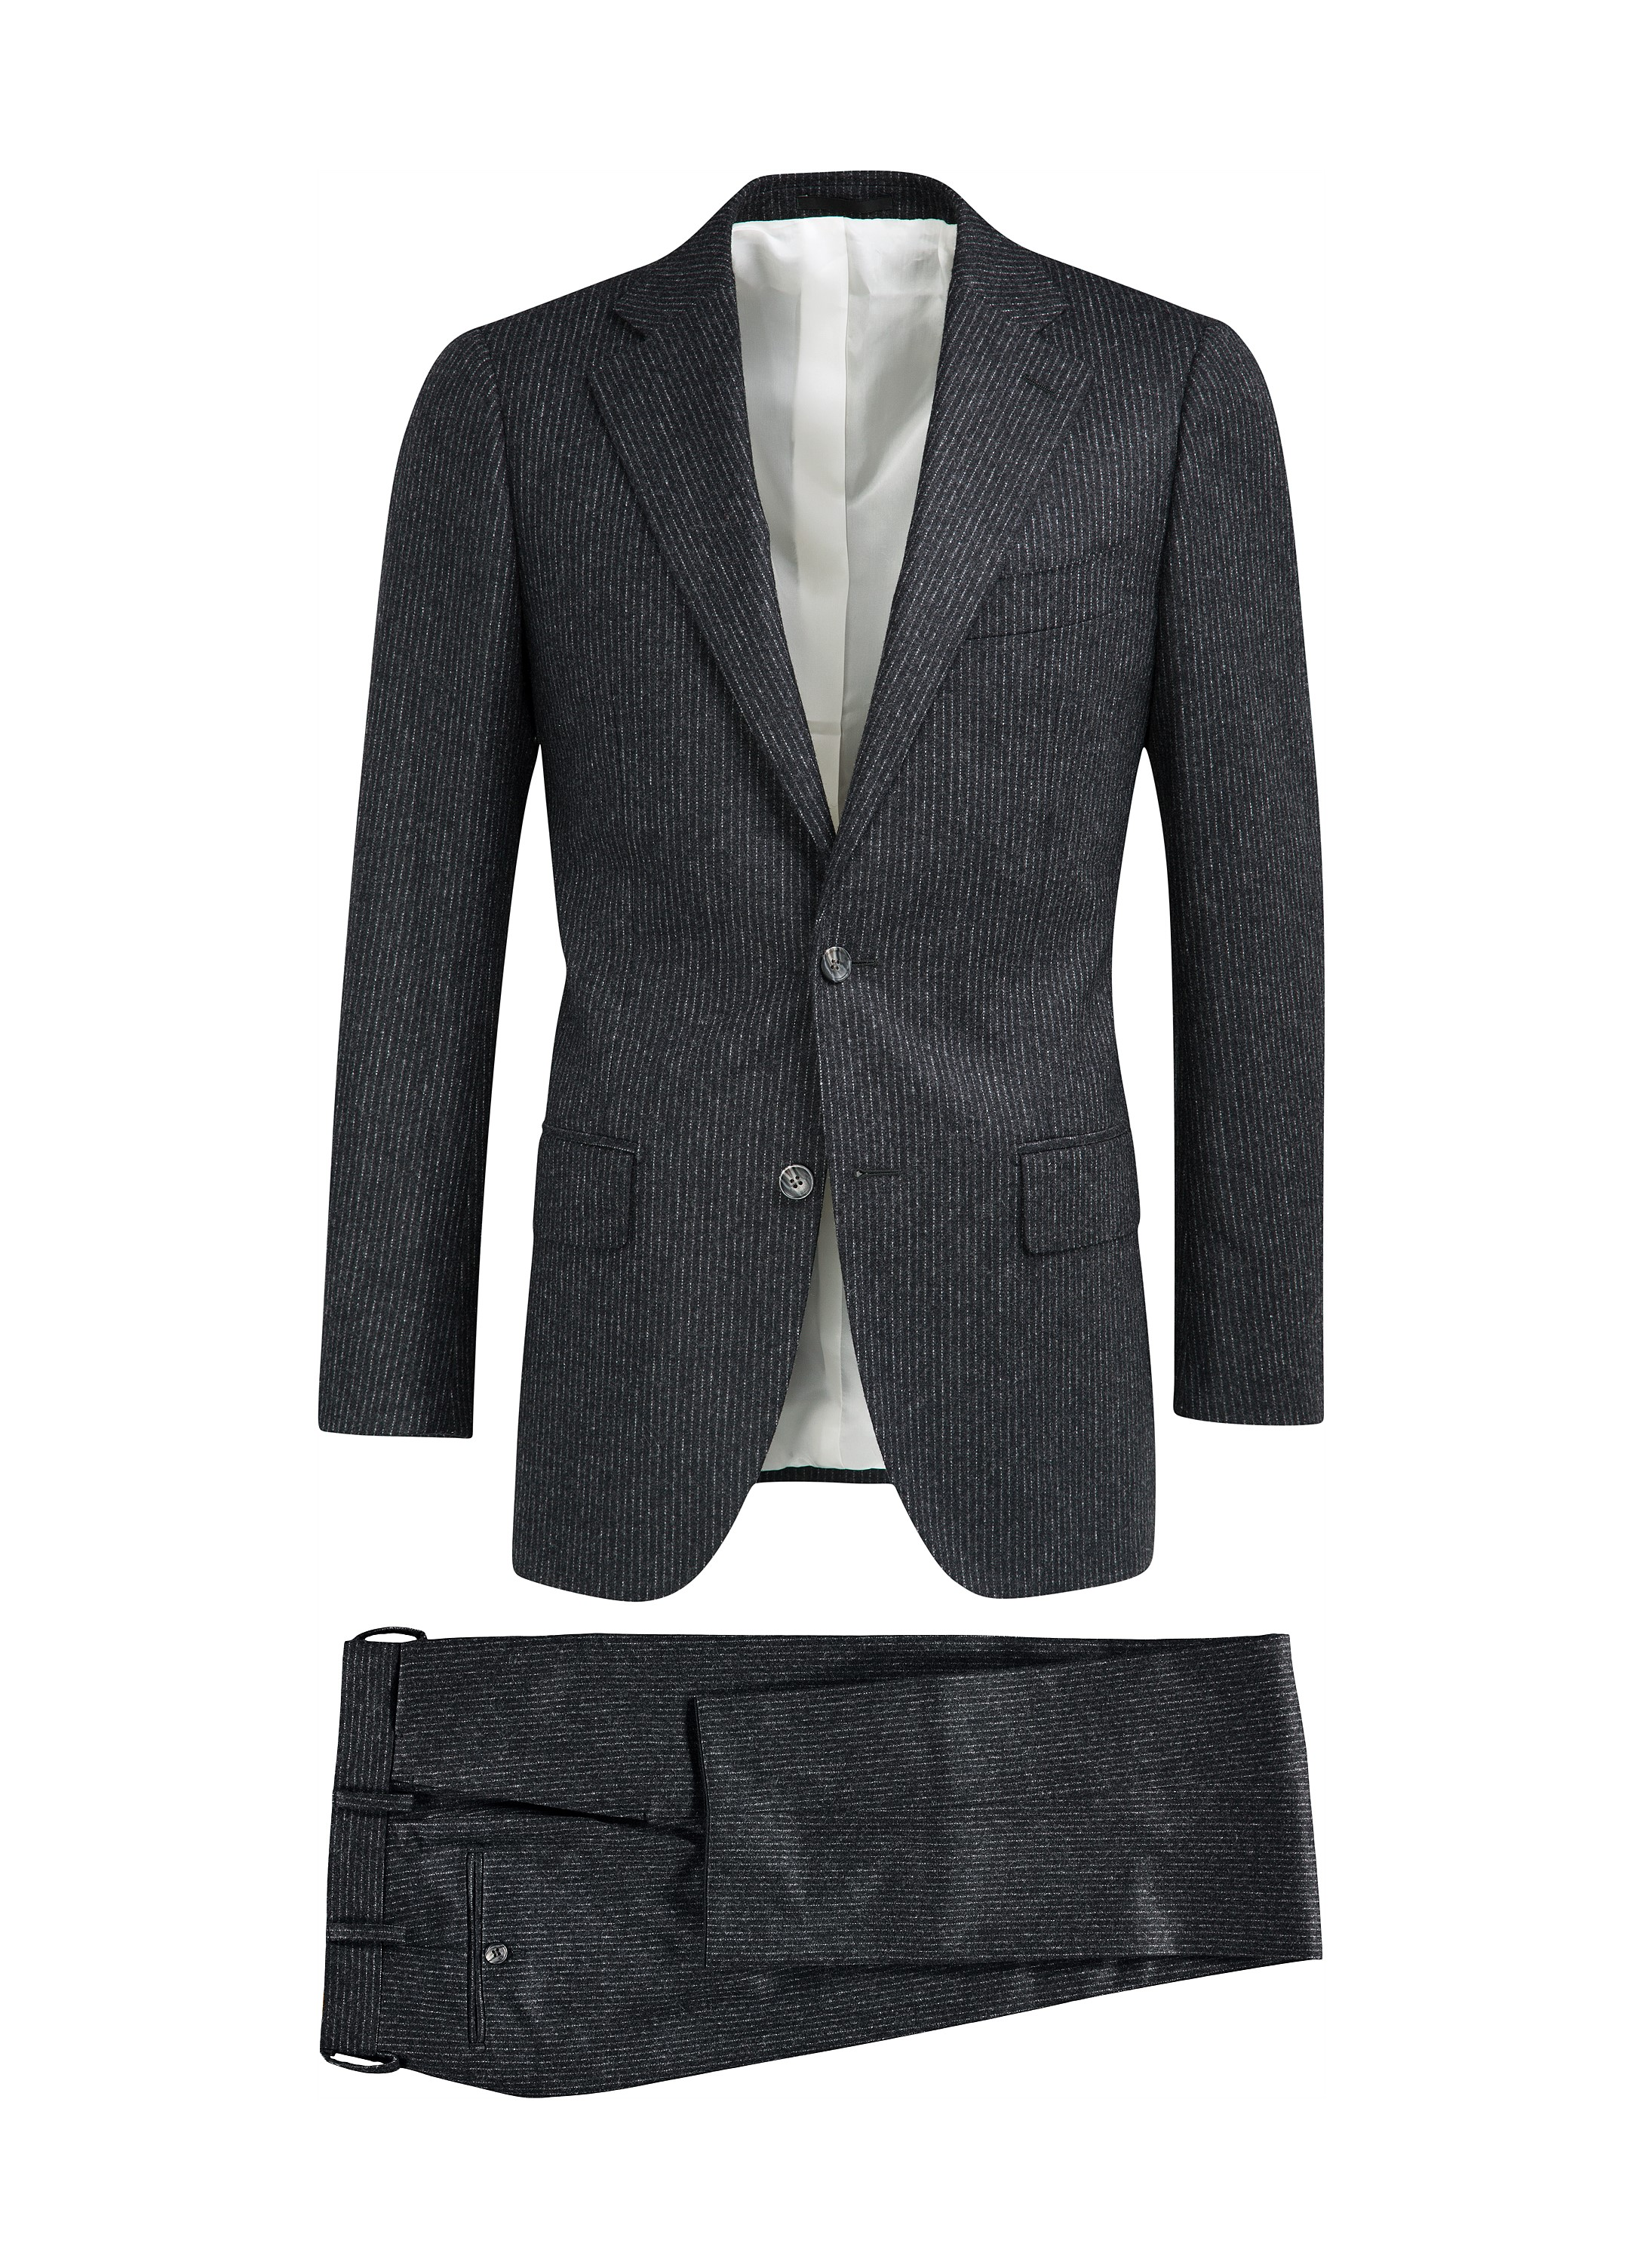 http://statics.suitsupply.com/images/products/Suits/zoom/Suits_Grey_Stripe_Lazio_P3940_Suitsupply_Online_Store_5.jpg